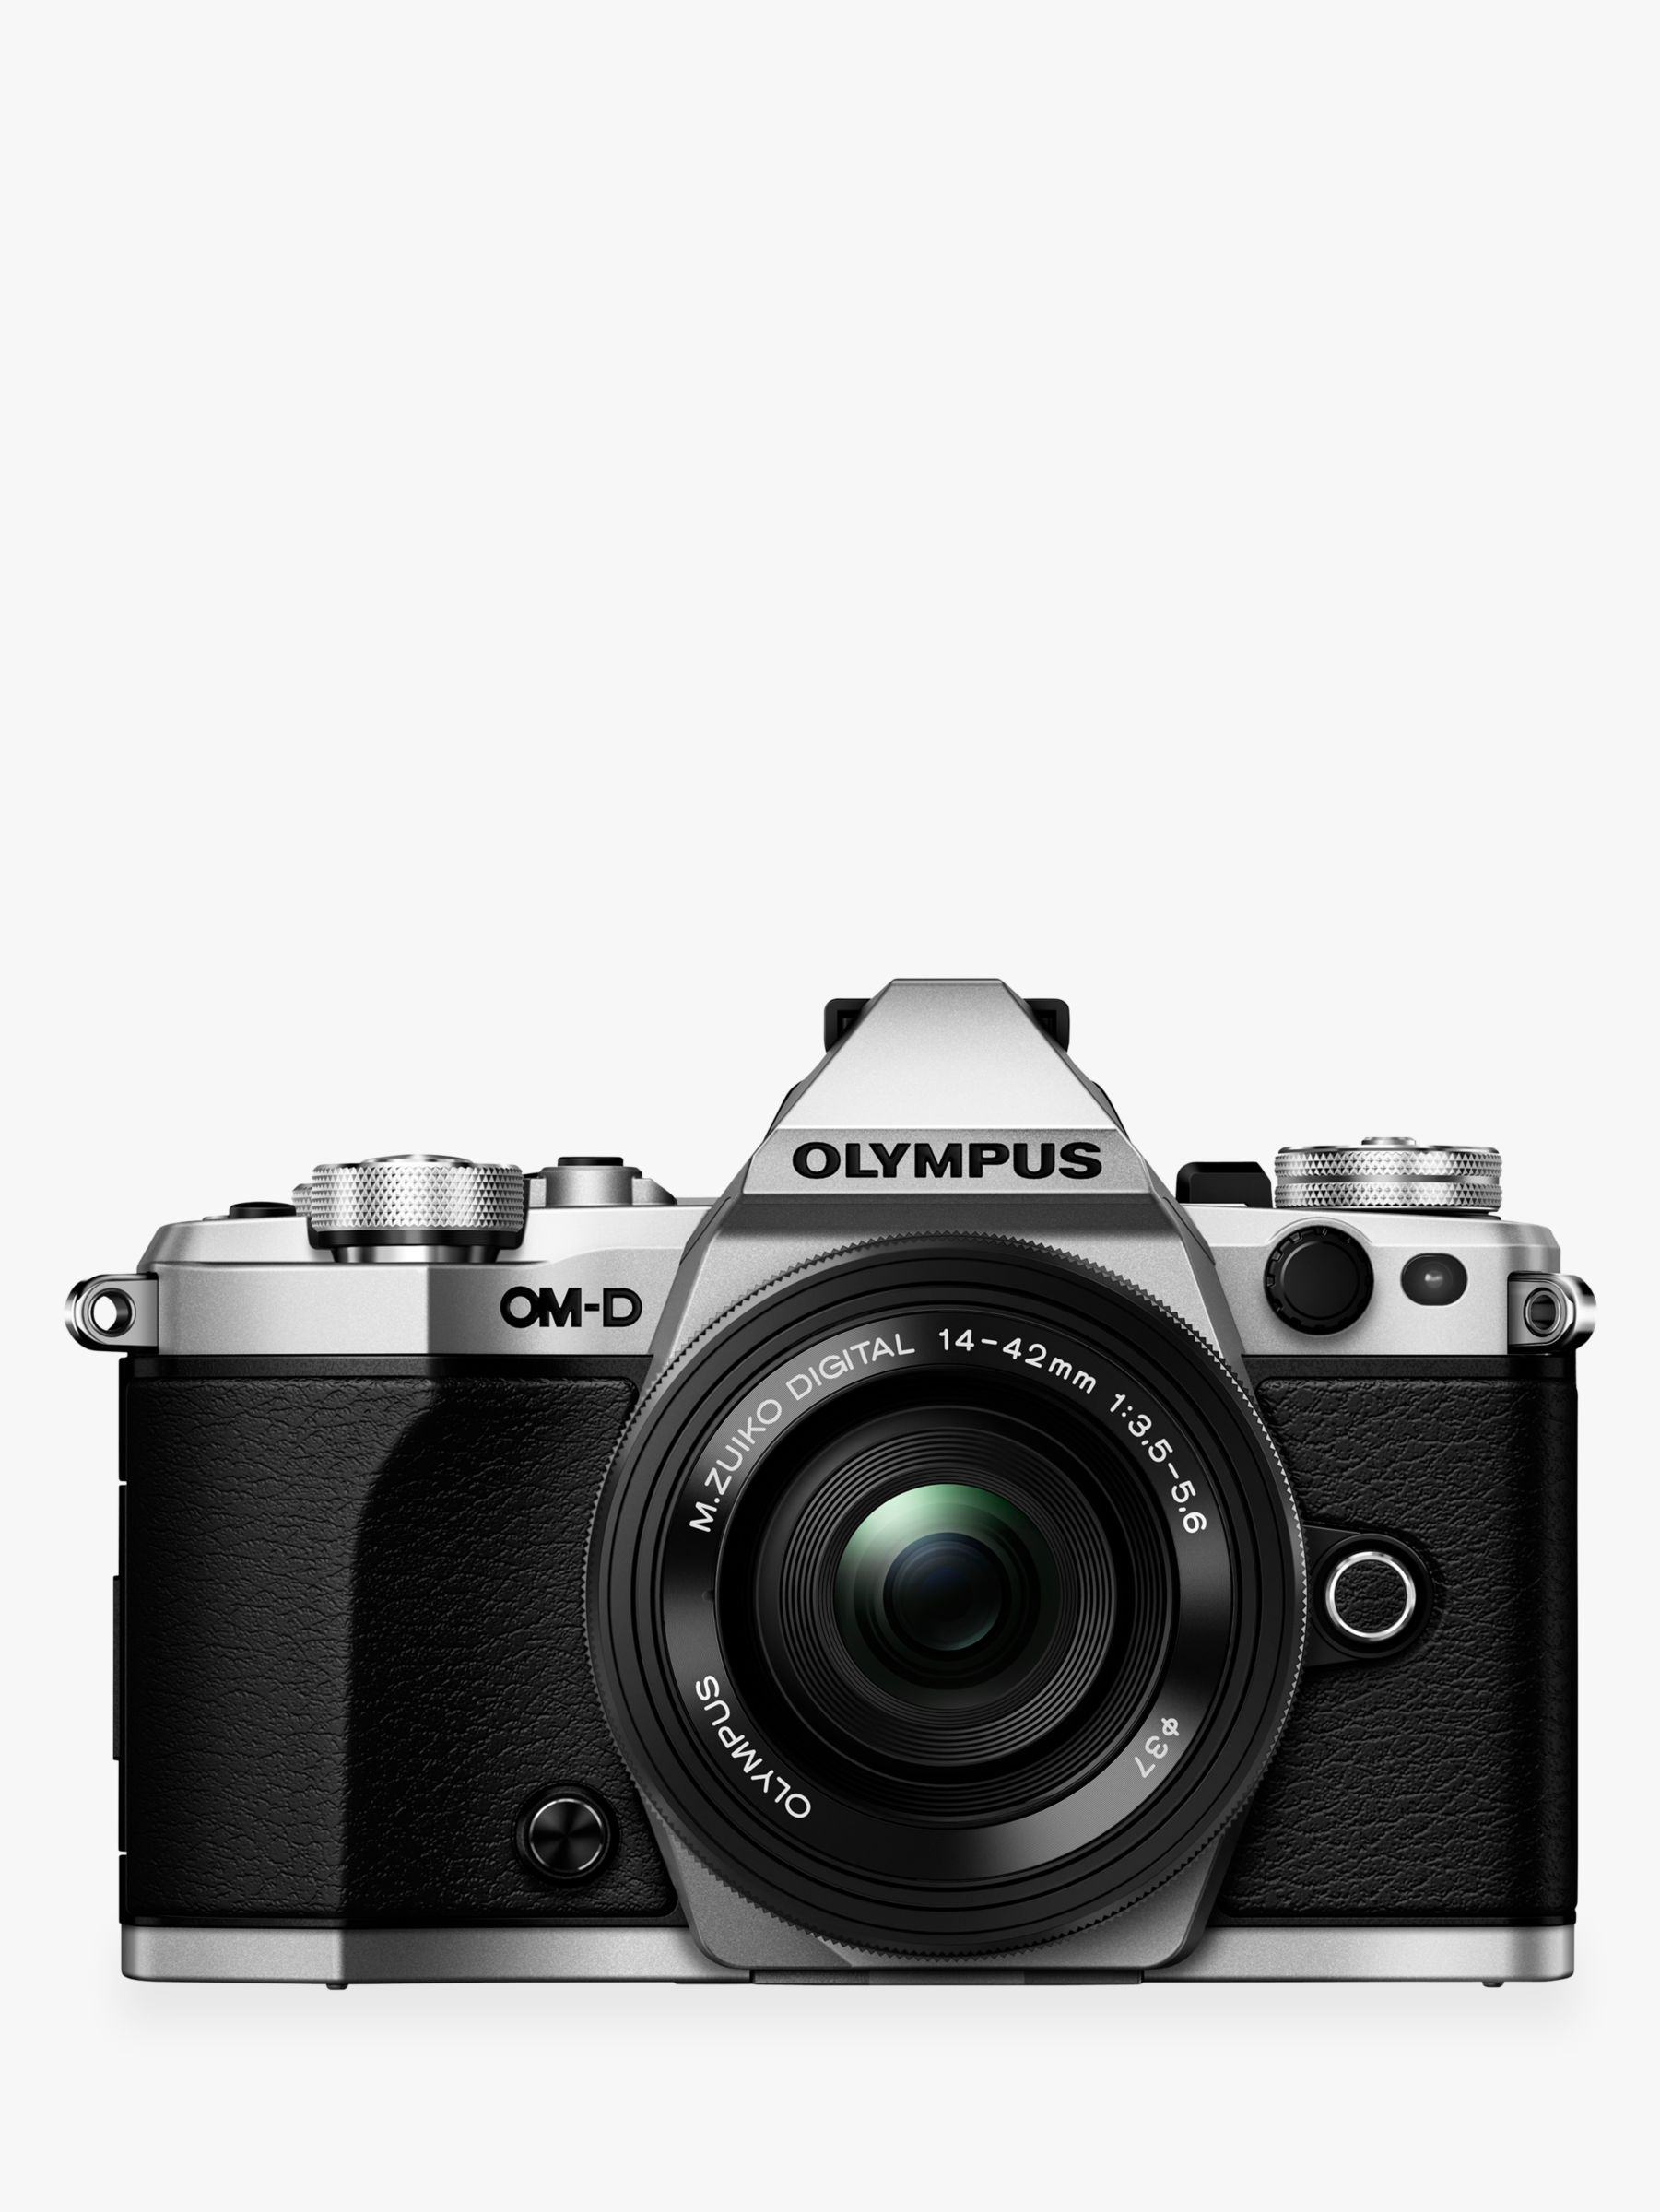 Olympus Olympus OM-D E-M5 Mark II Compact System Camera, HD 1080p, 16MP, Wi-Fi, 3 LCD Touch Screen with M.ZUIKO DIGITAL 14-42mm EZ Lens